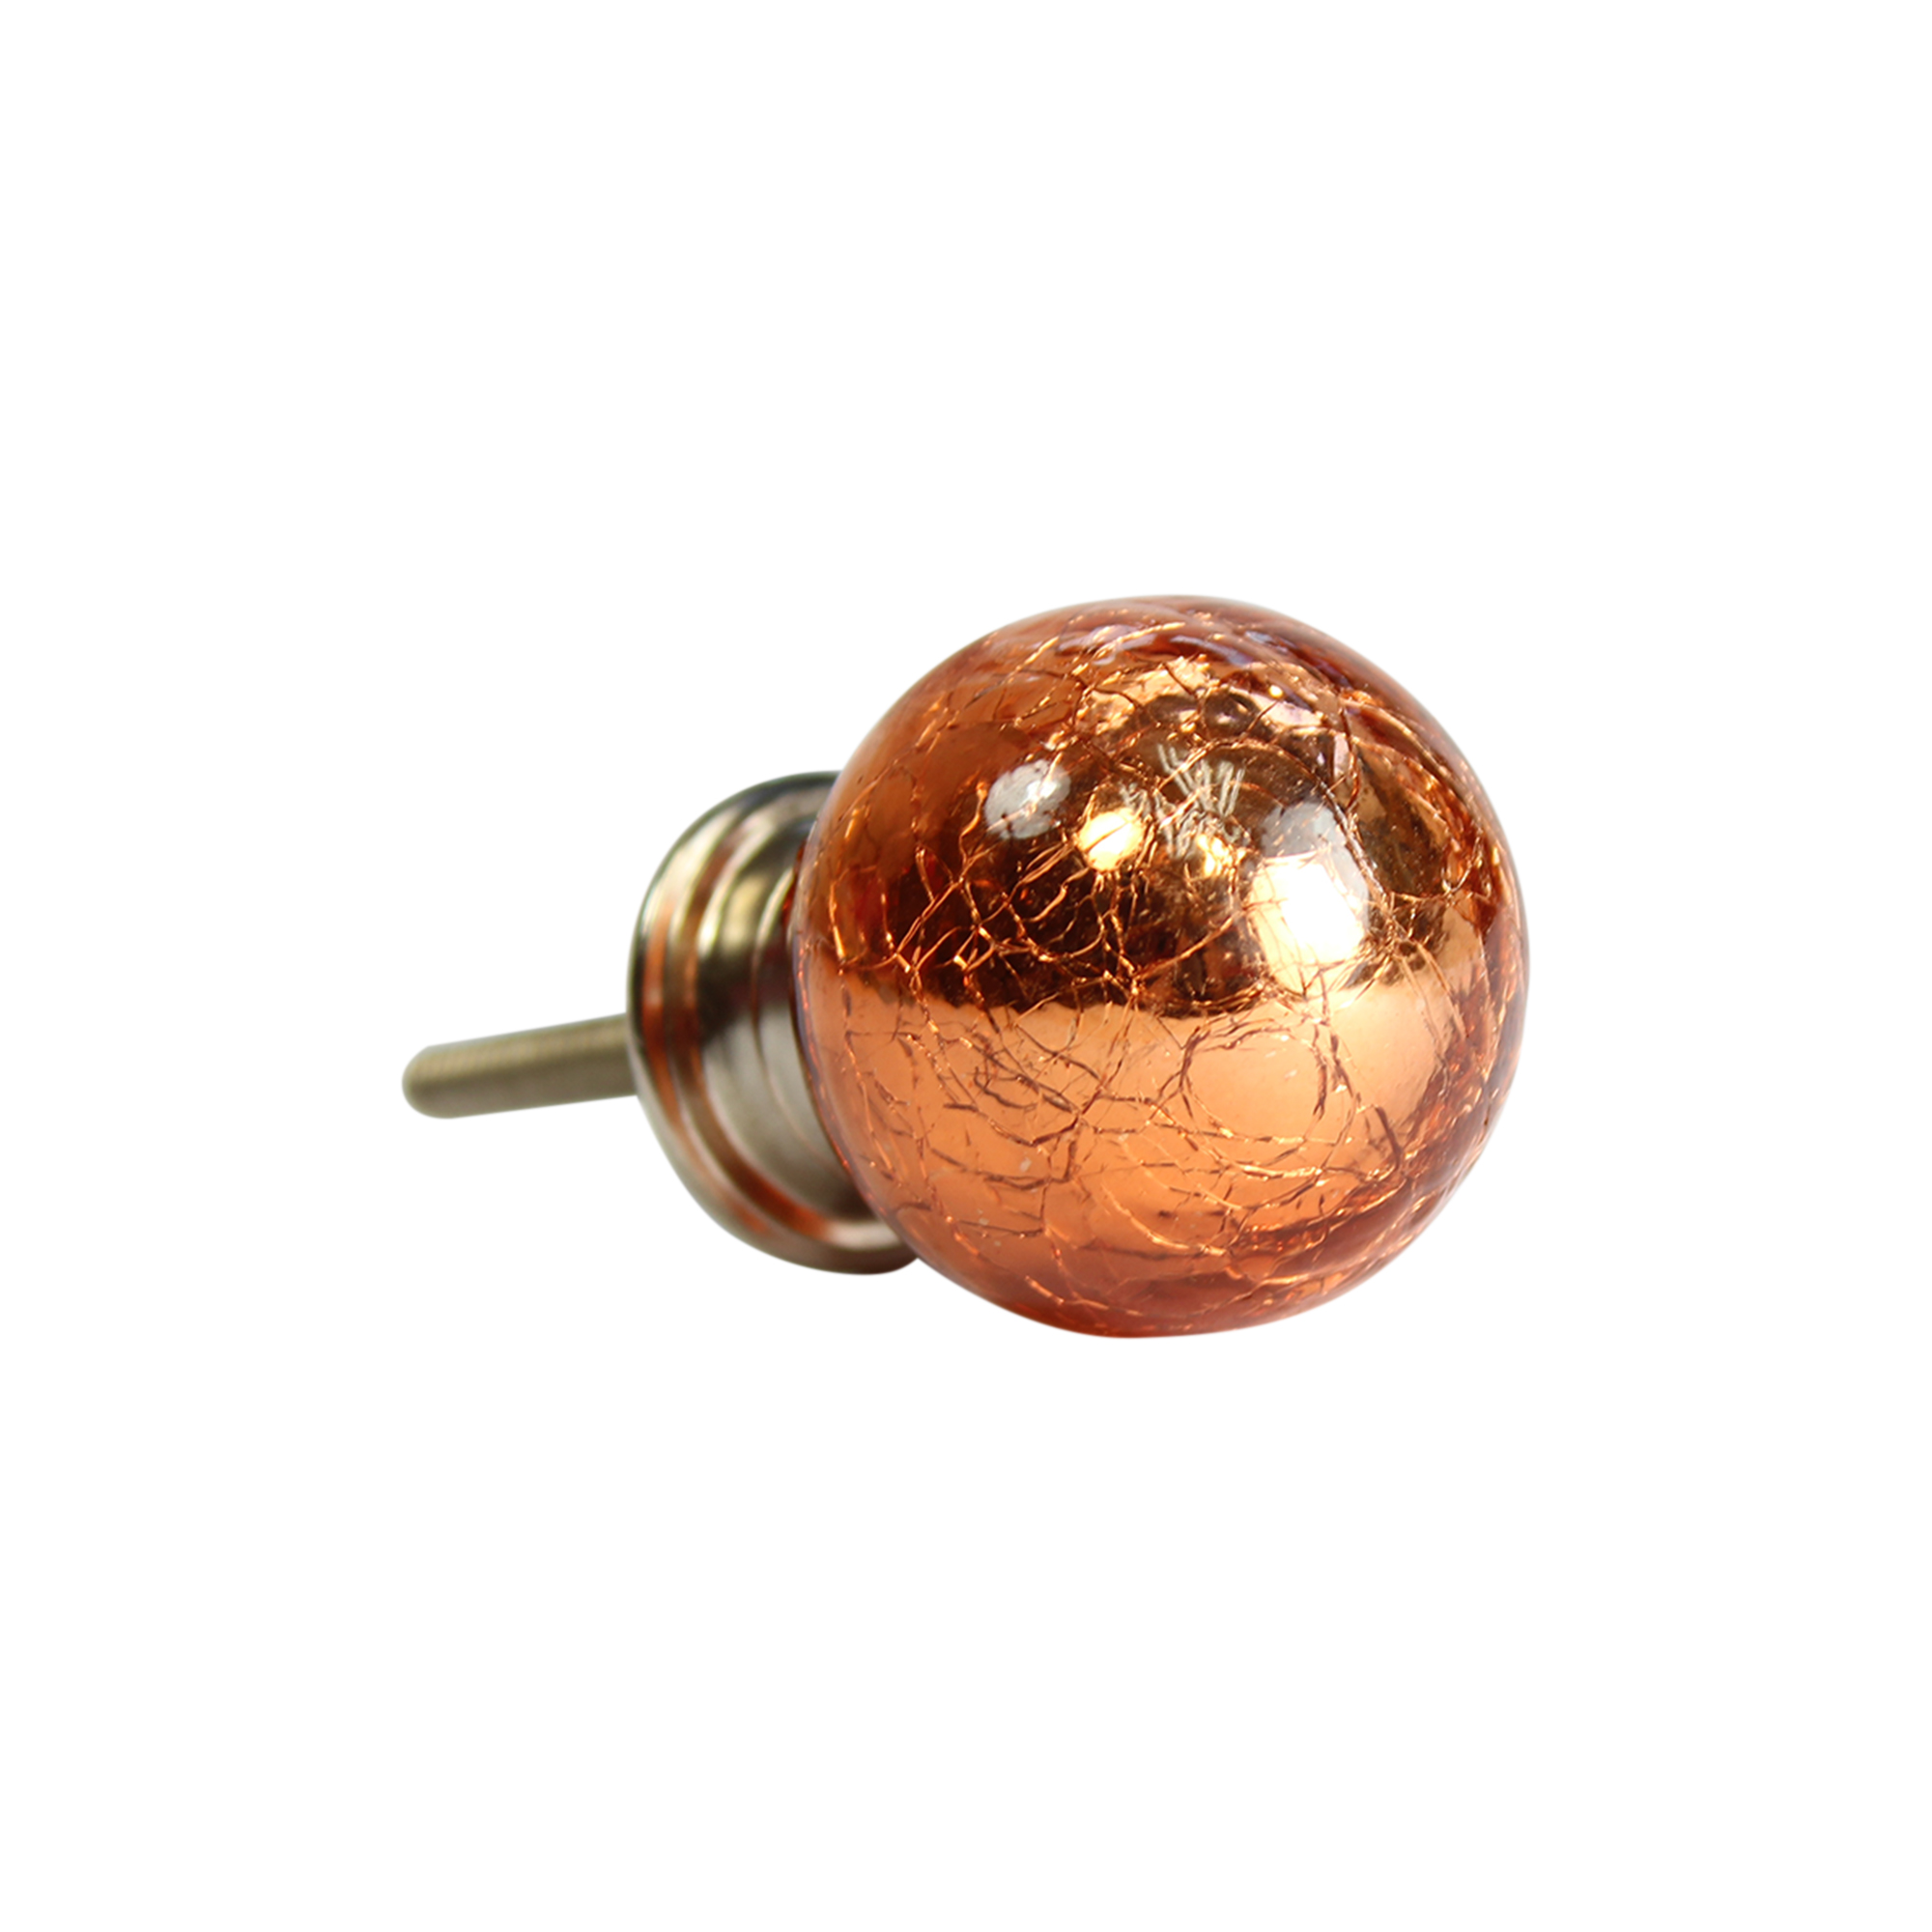 Metallic Crackle Glass Drawer Knobs Orange Ball